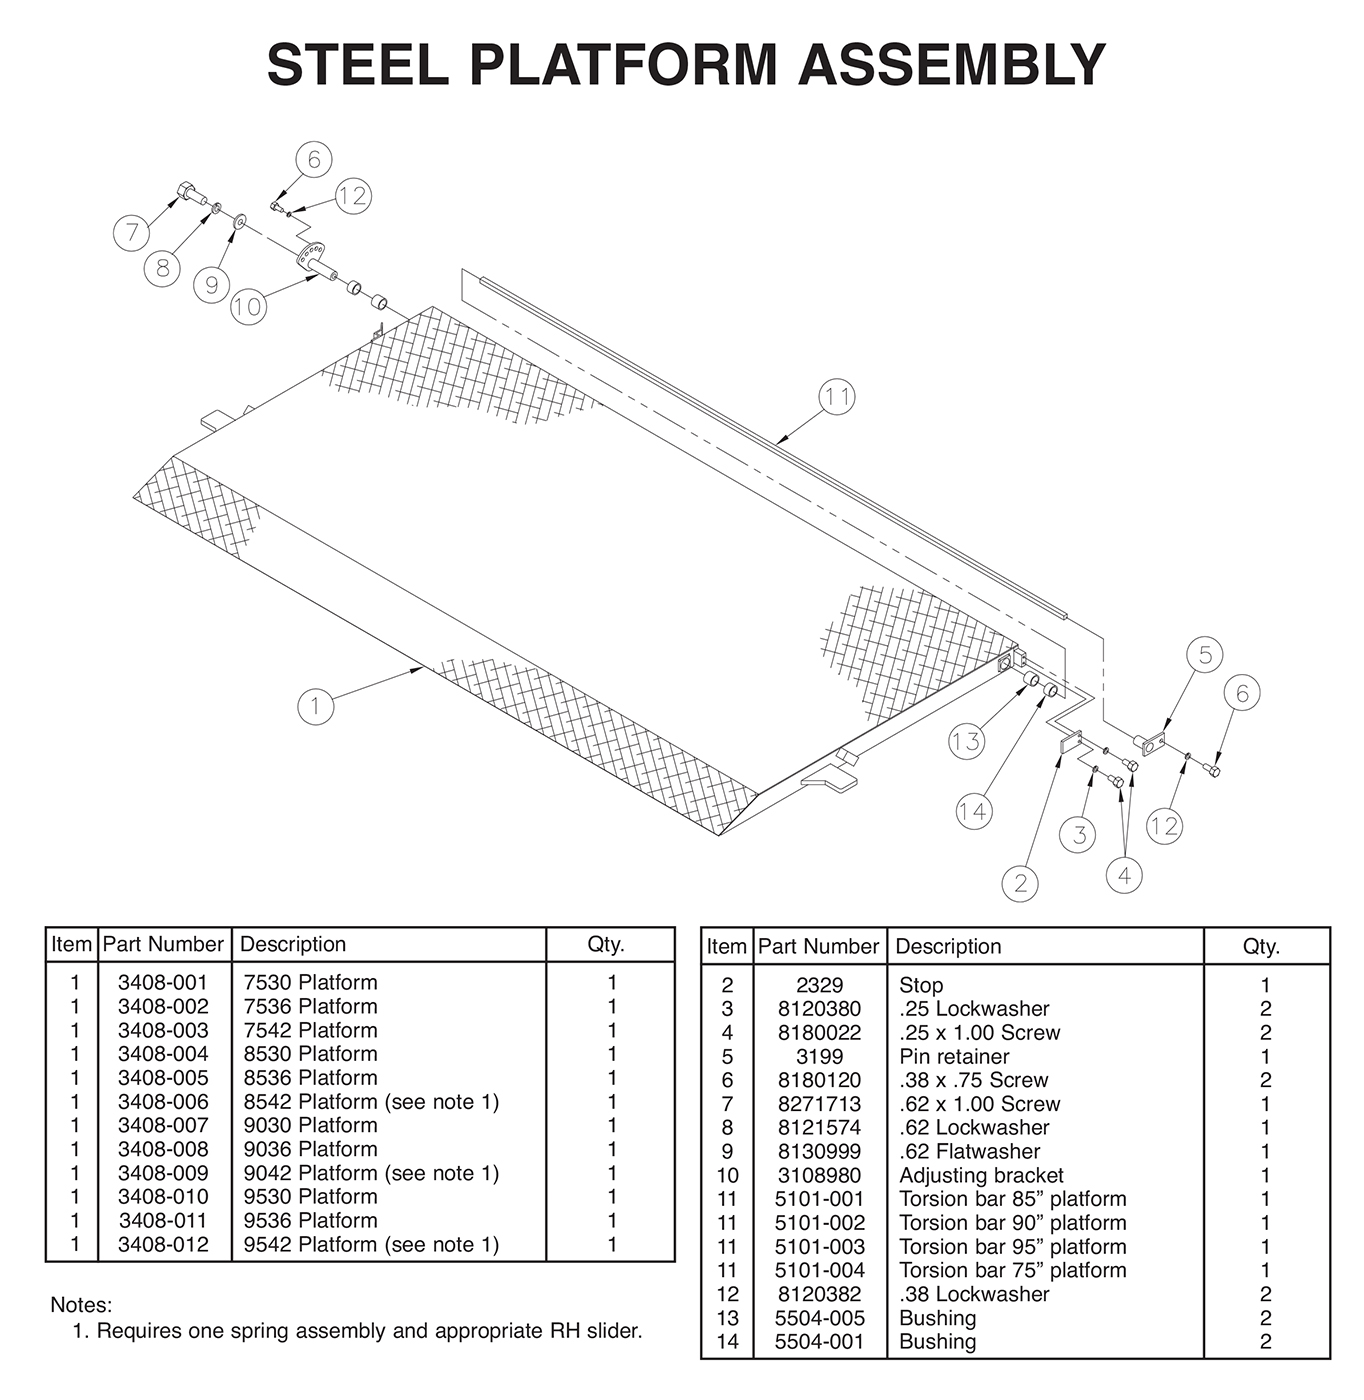 TVLR 30/30A Steel Platform Assembly Diagram